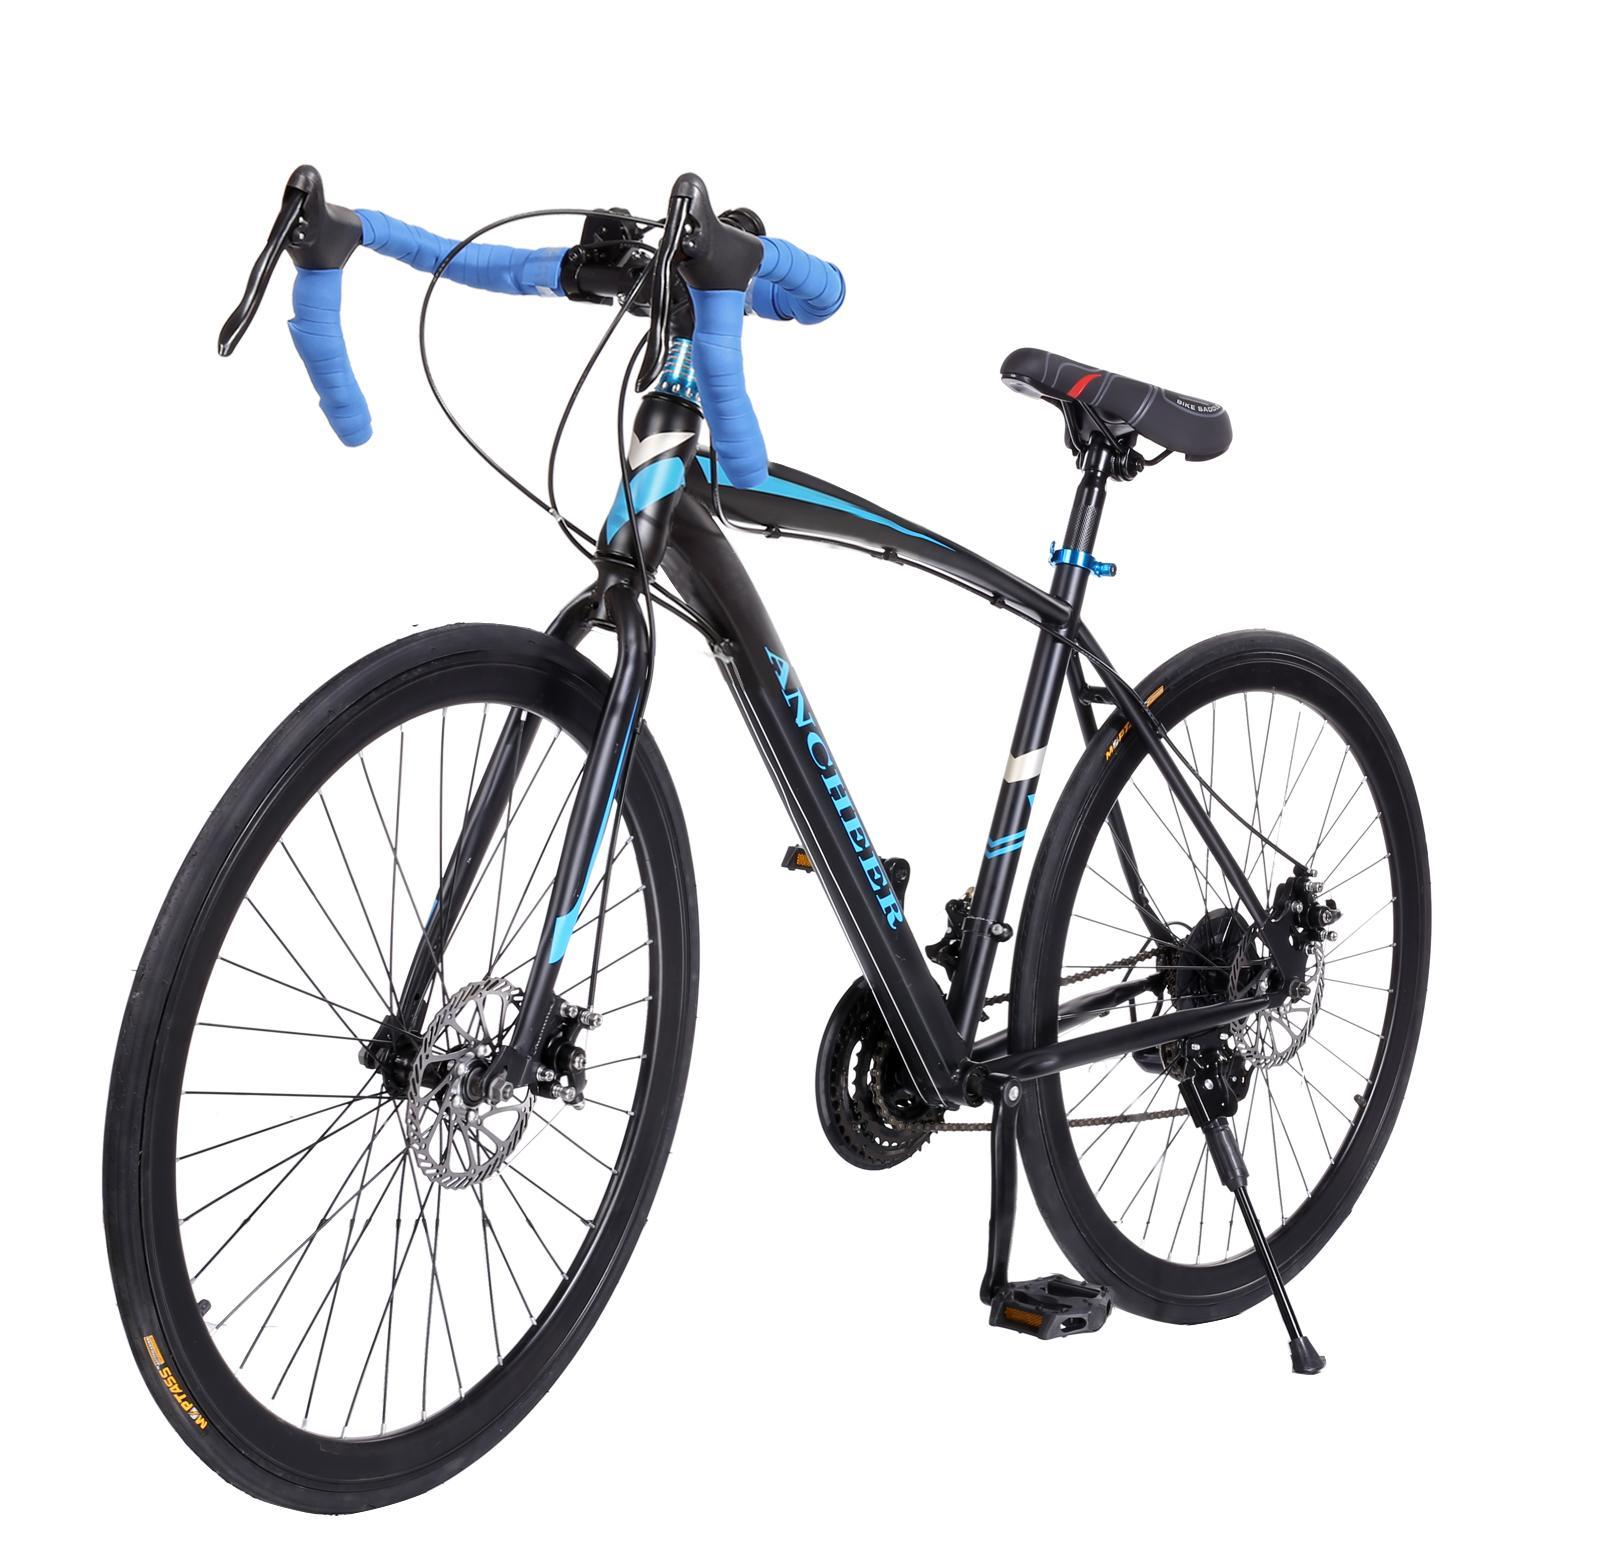 The worth buy Ancheer Hot Cool 700C Aluminum Fixed Gear Road Cycling Road Bicycle SPHP